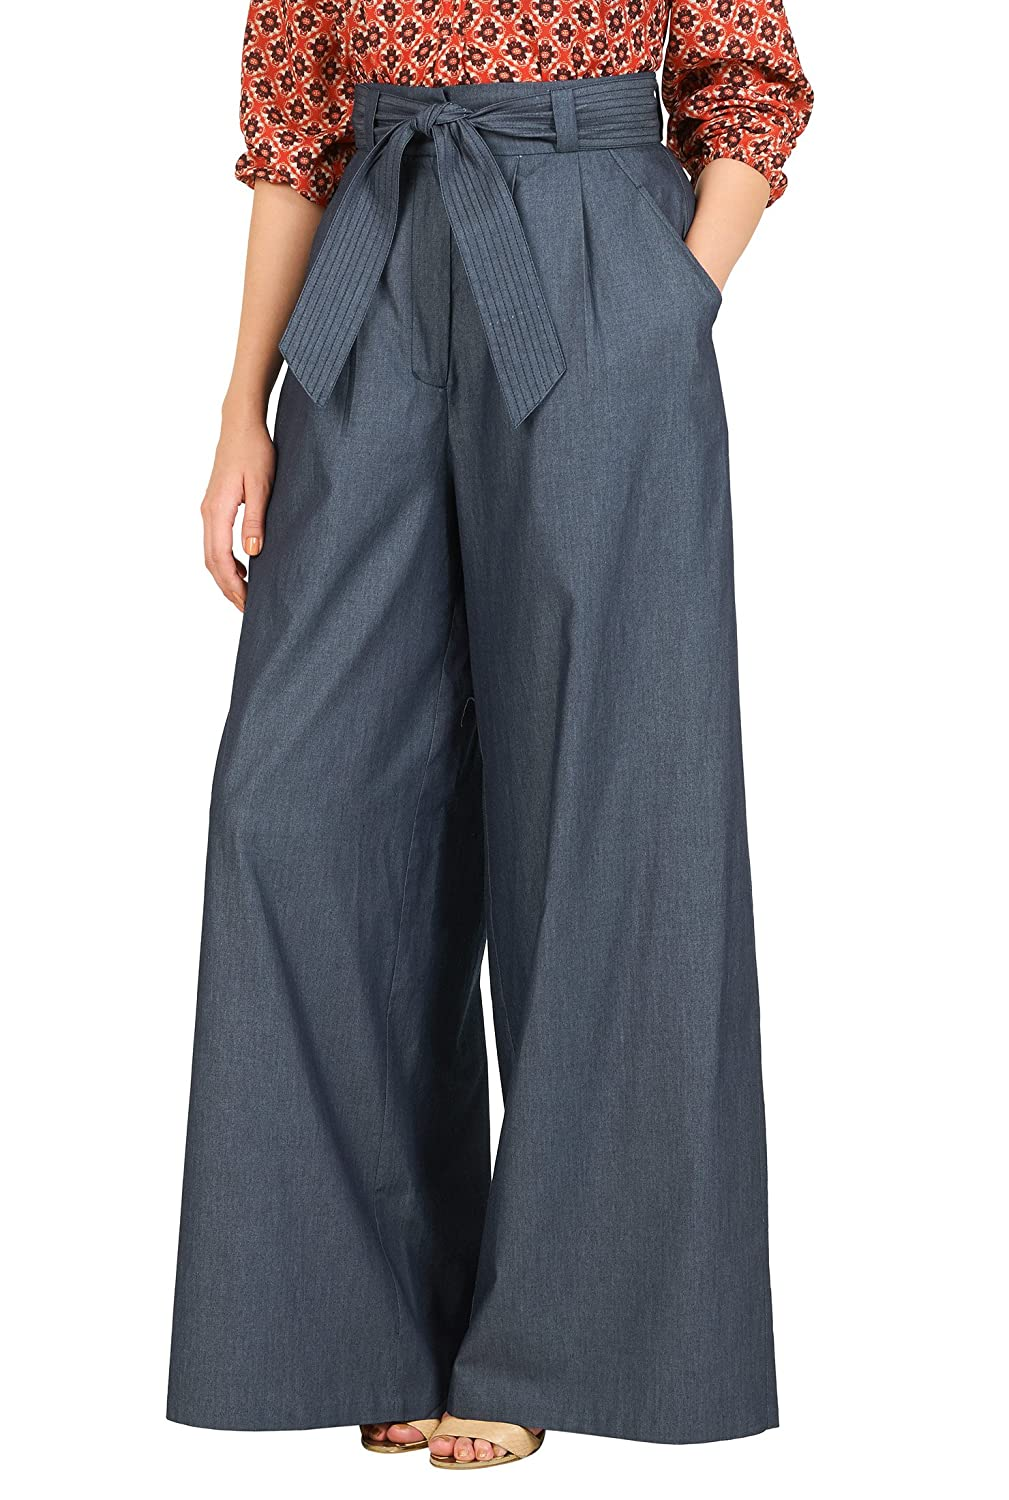 1930s Plus Size Dresses High waist chambray palazzo pants $56.95 AT vintagedancer.com